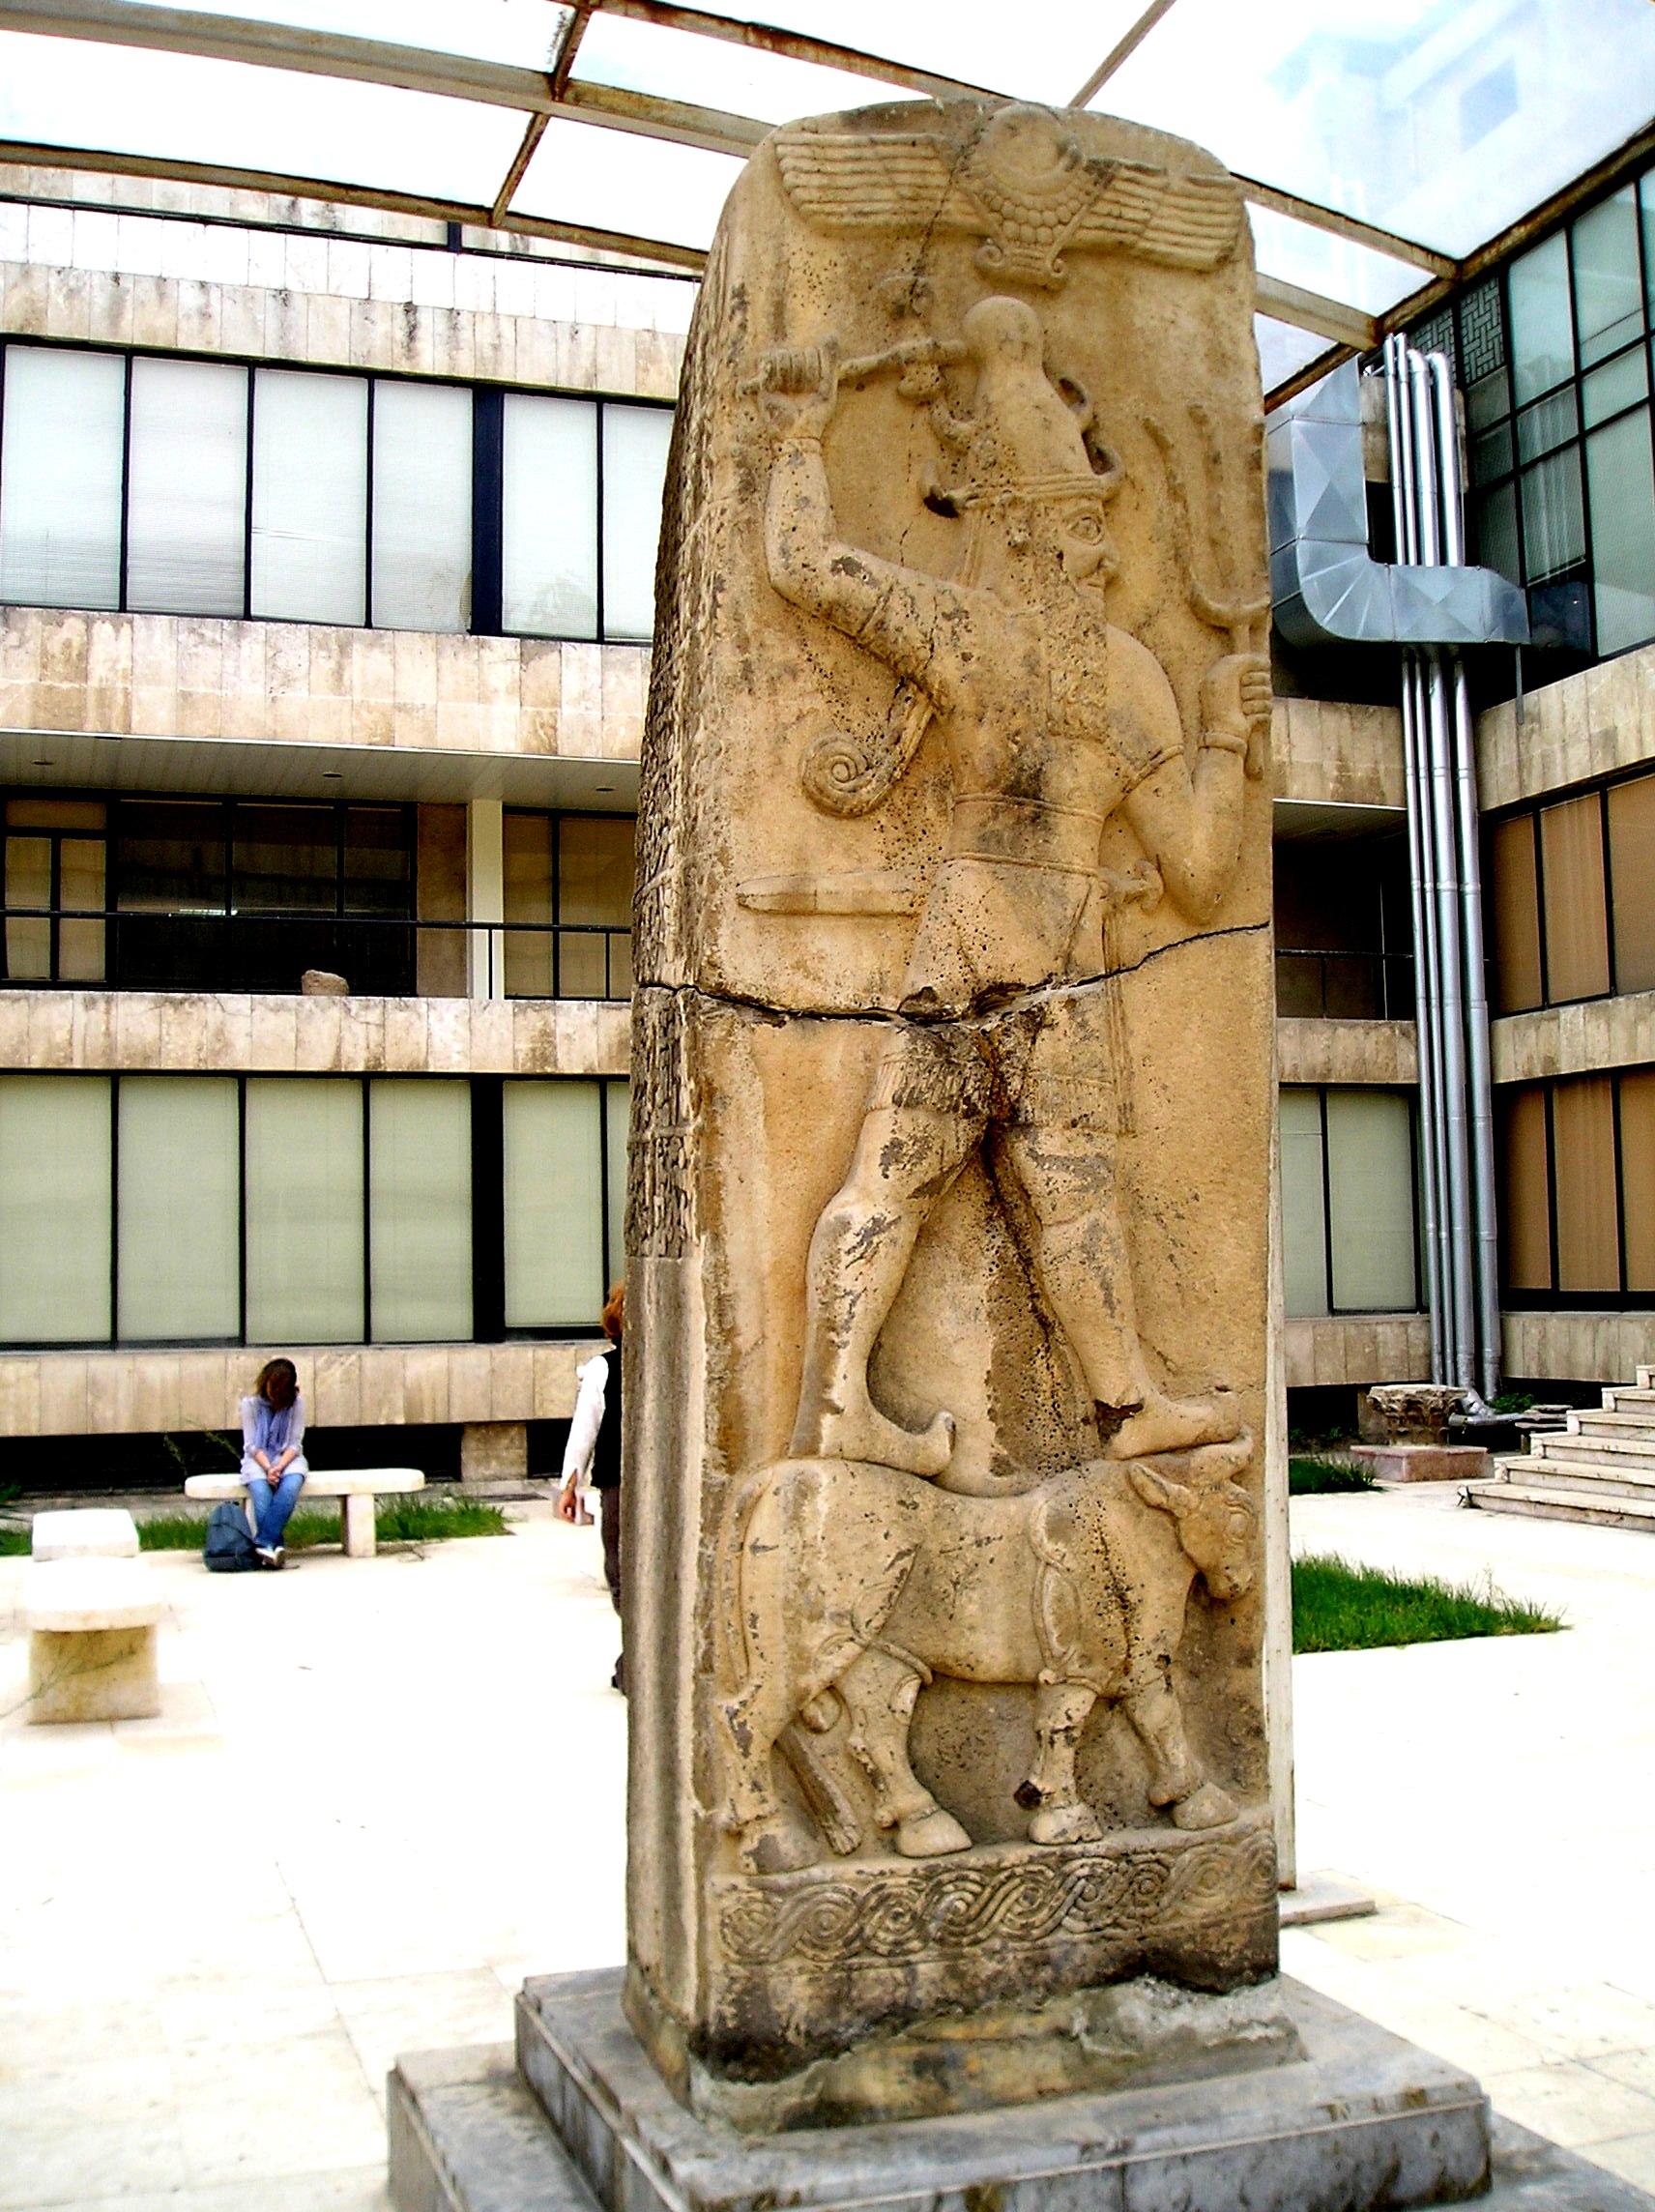 Adad - Teshub stele artefact, 3rd main son to Earth Colony Commander Enlil, powerful lethal weapons of the thunder god, flying disc symbol of Nibiru above him, alien giant Adad, who battled time & time again, against his cousins on Enki's side of King Anu's descendants